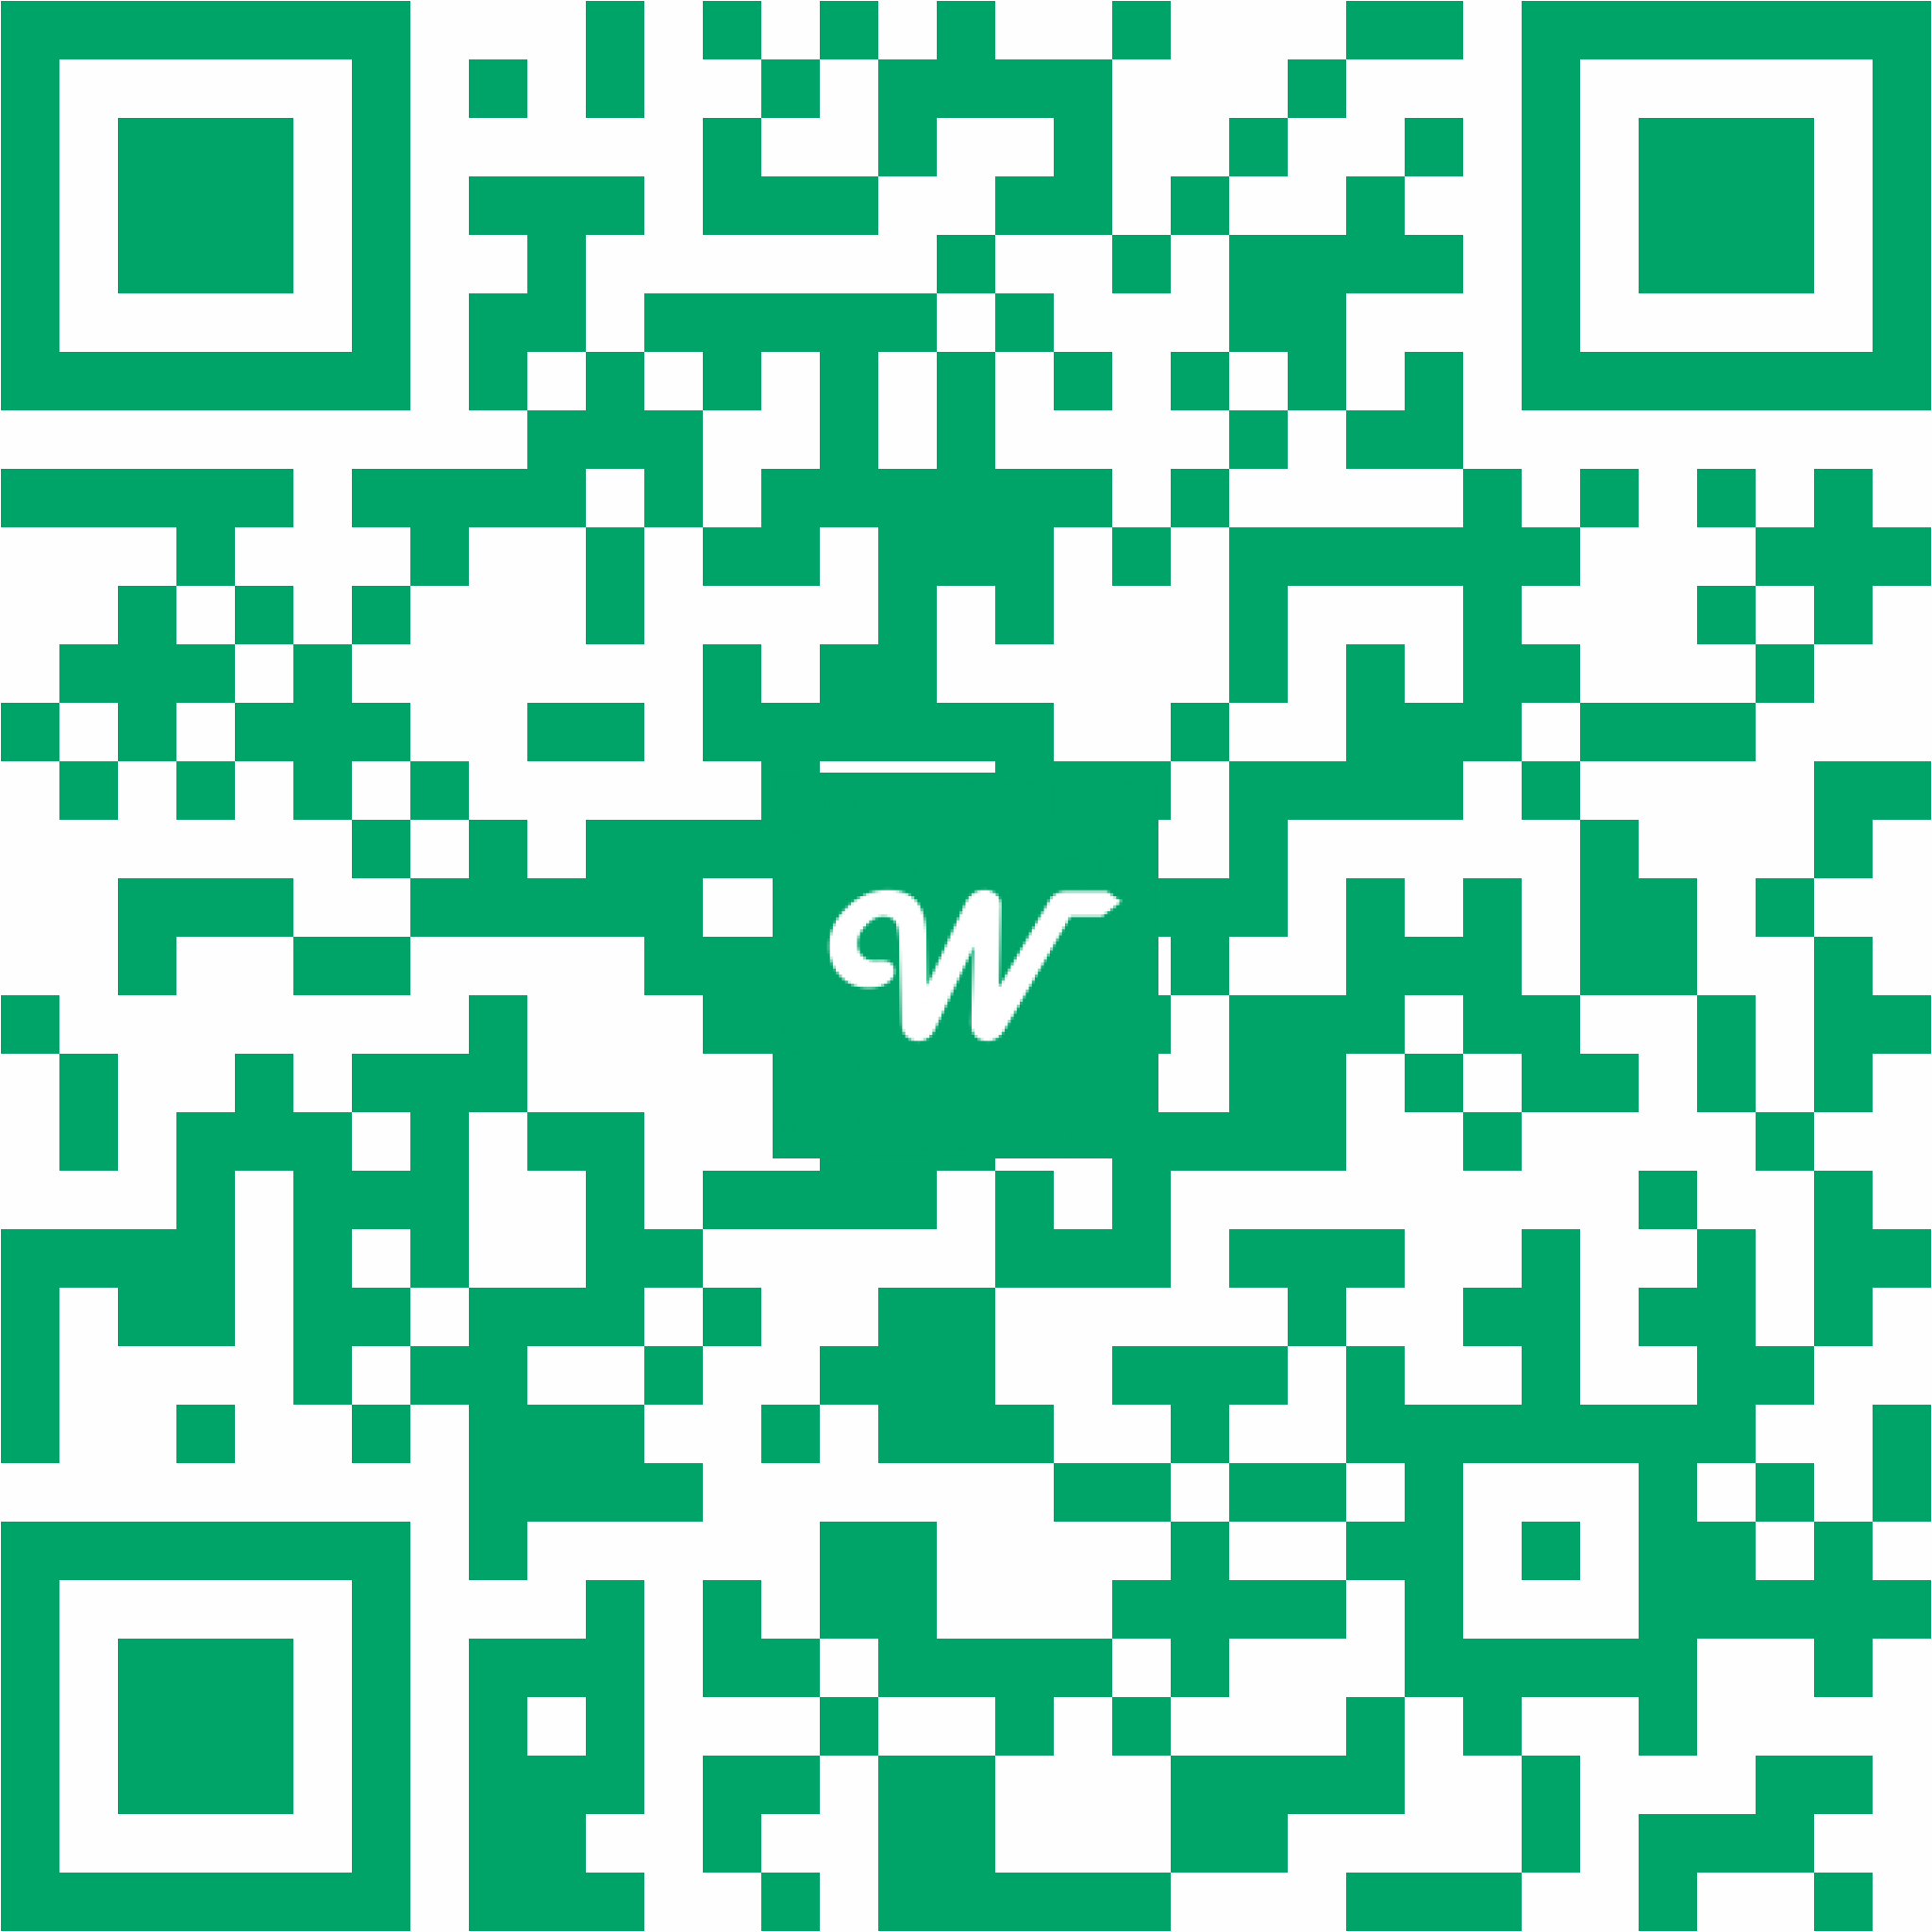 Printable QR code for 505 Virginia Ave